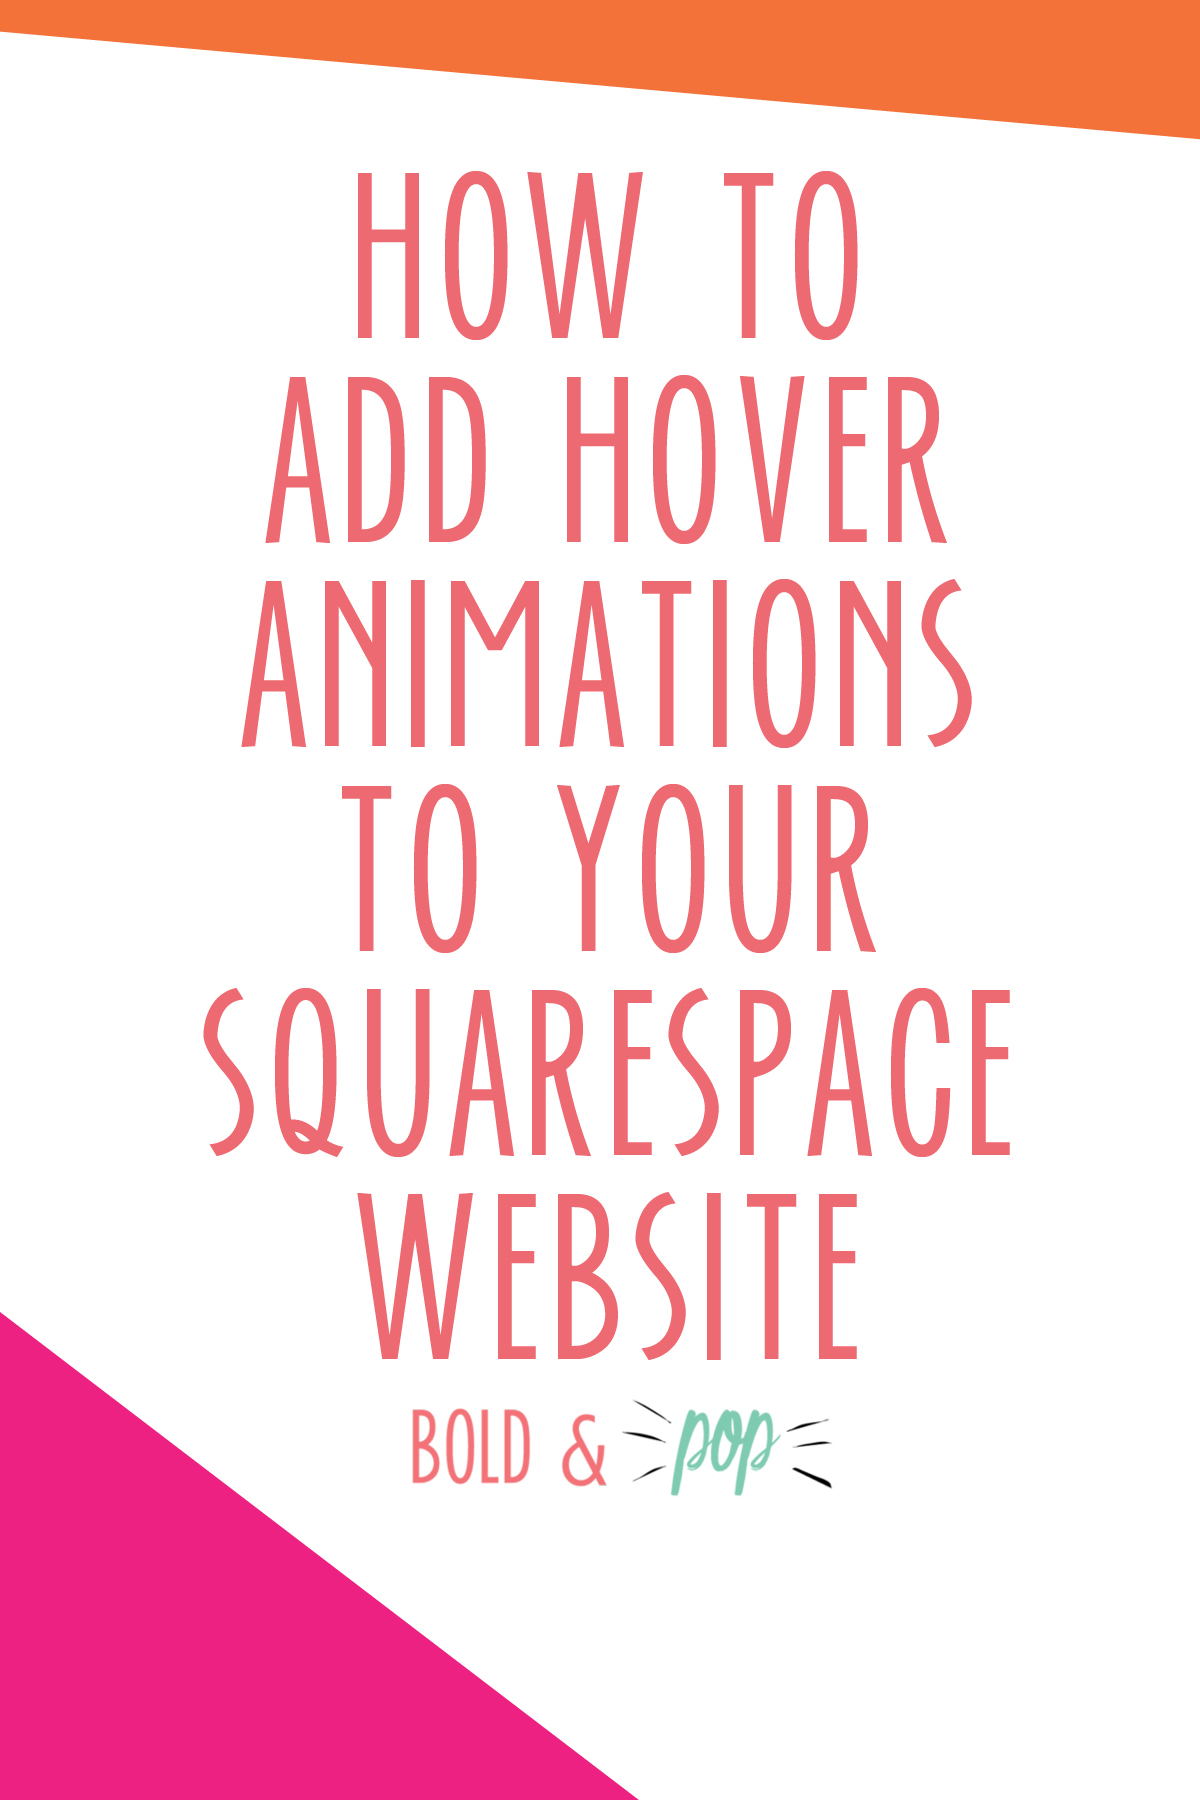 Bold & Pop : How to Add Hover Animations to Your Squarespace Website